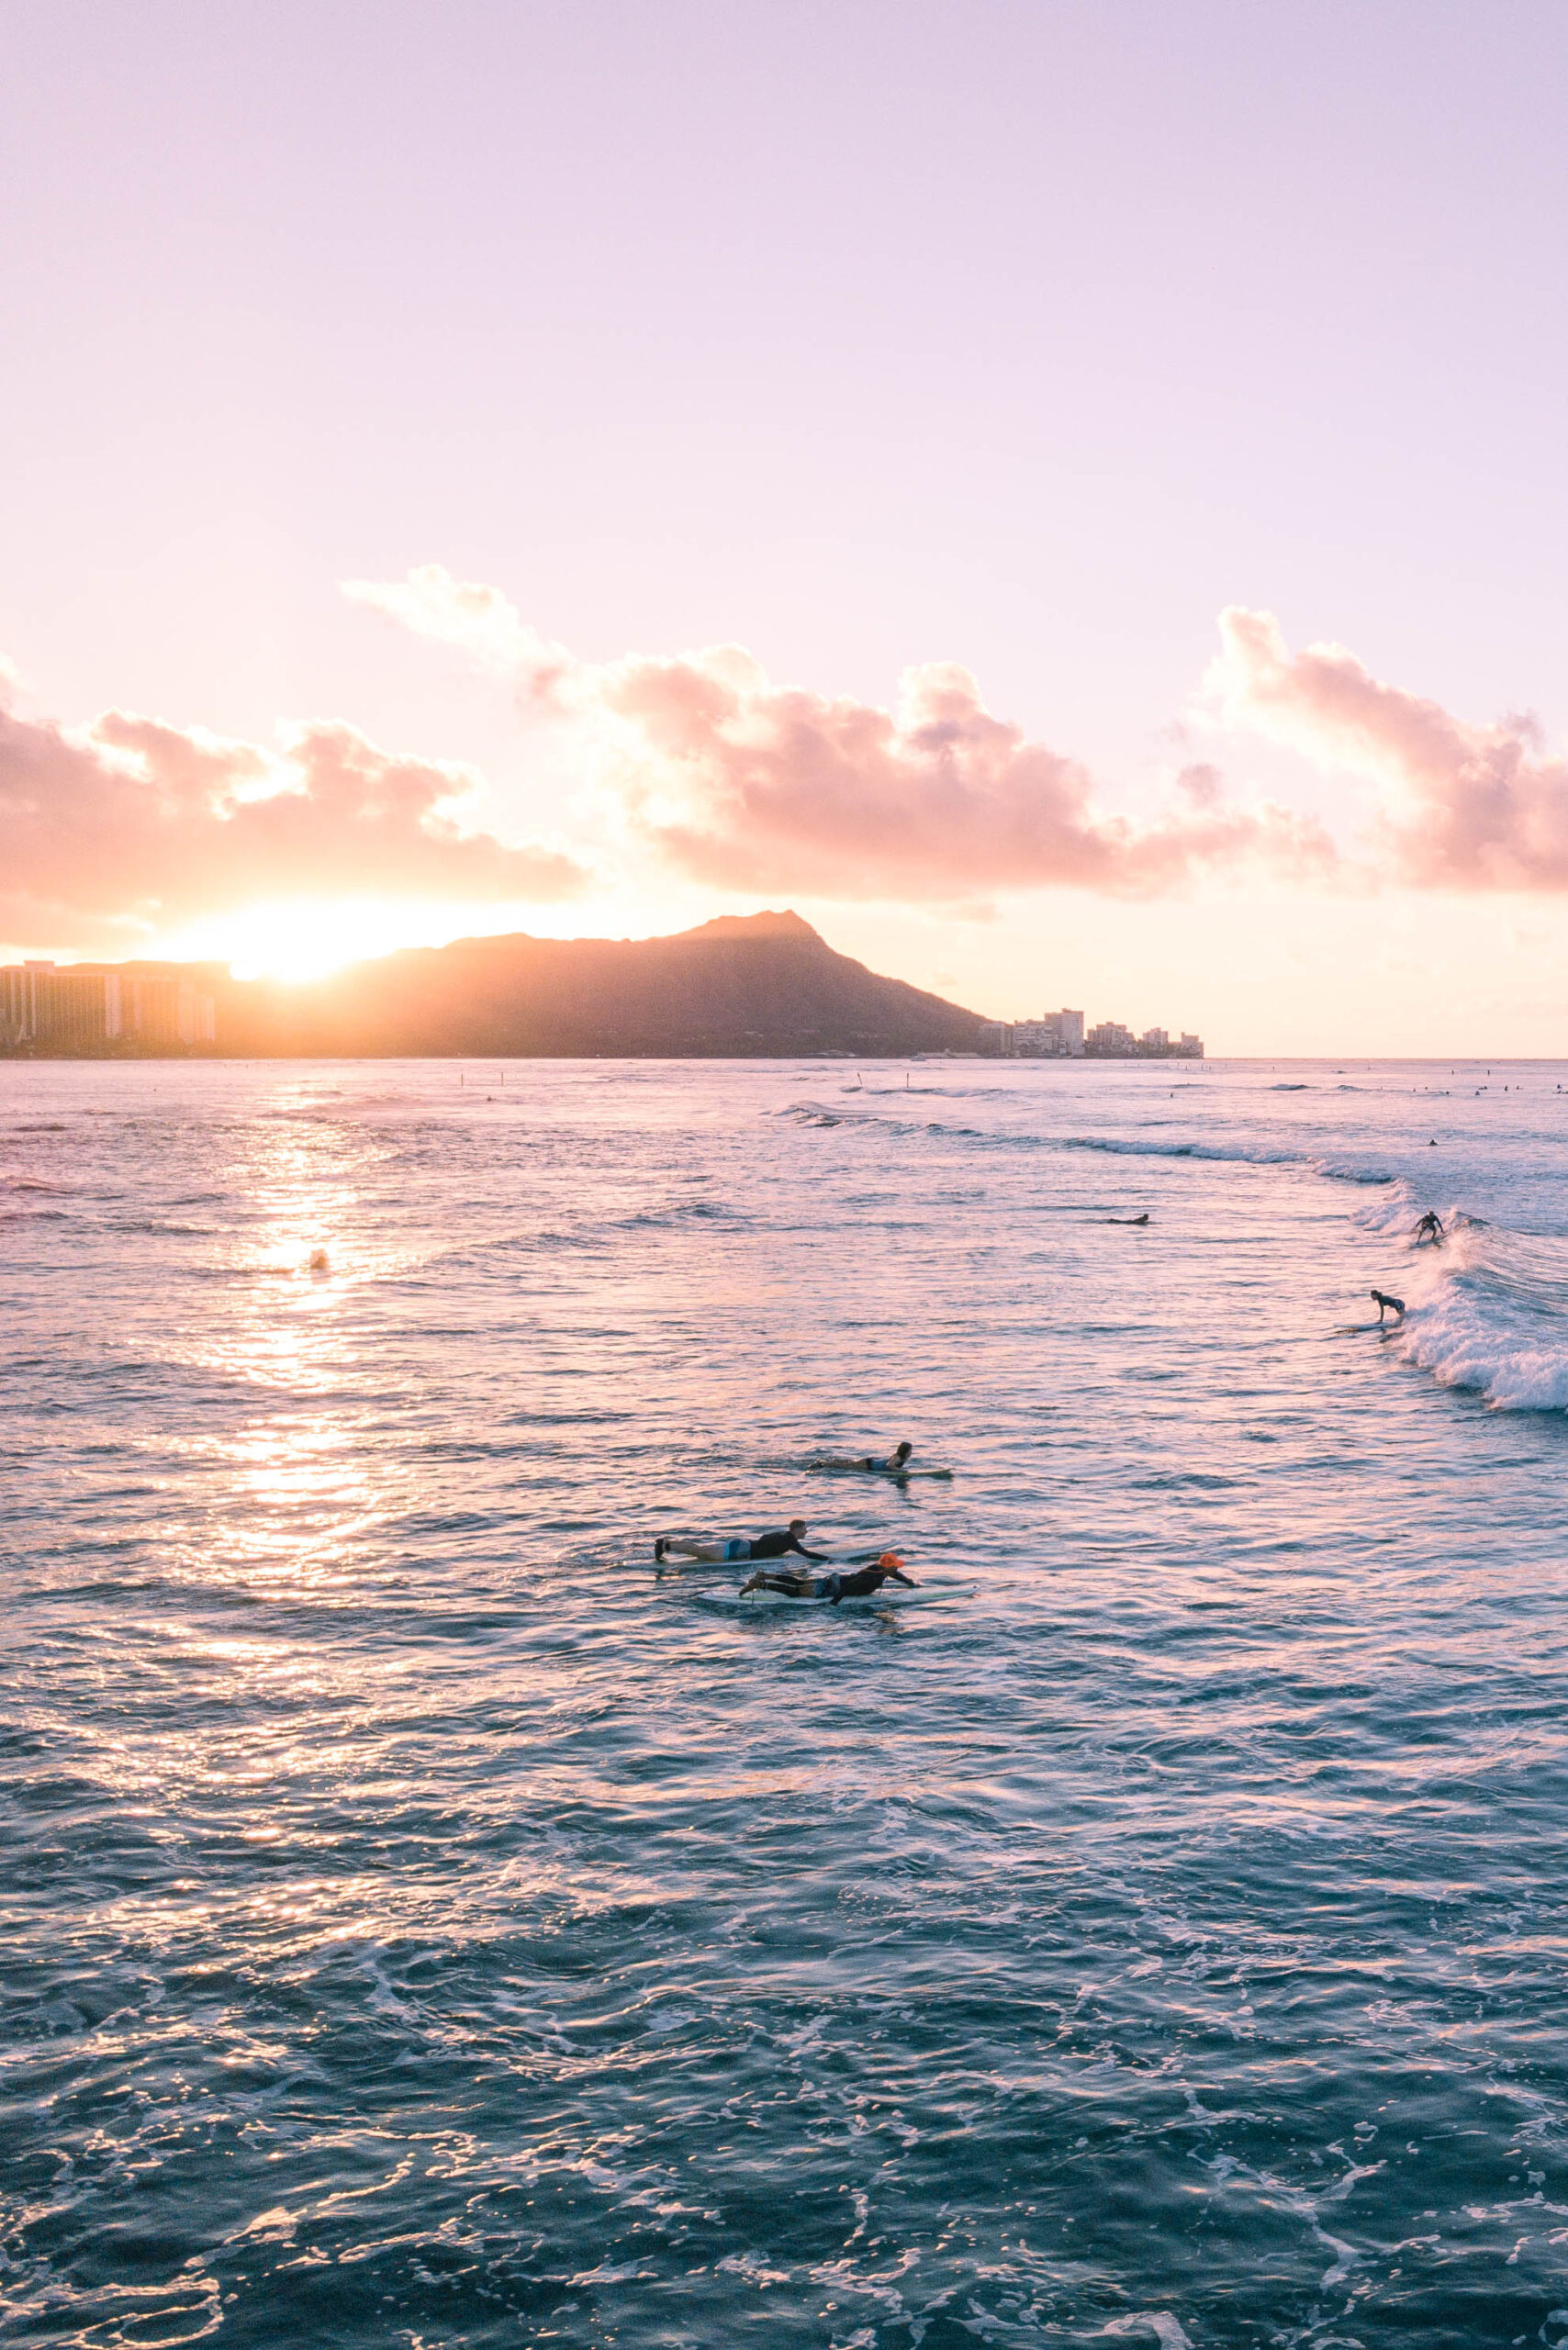 Hawaii Photos: Honolulu Sunrise - Dreaming of a Hawaii vacation? I'm sharing a photo diary of the sunrise in Honolulu! | Sunrise Honolulu - Hawaii Sunrise - Oahu Sunrise- Hawaii Vacation